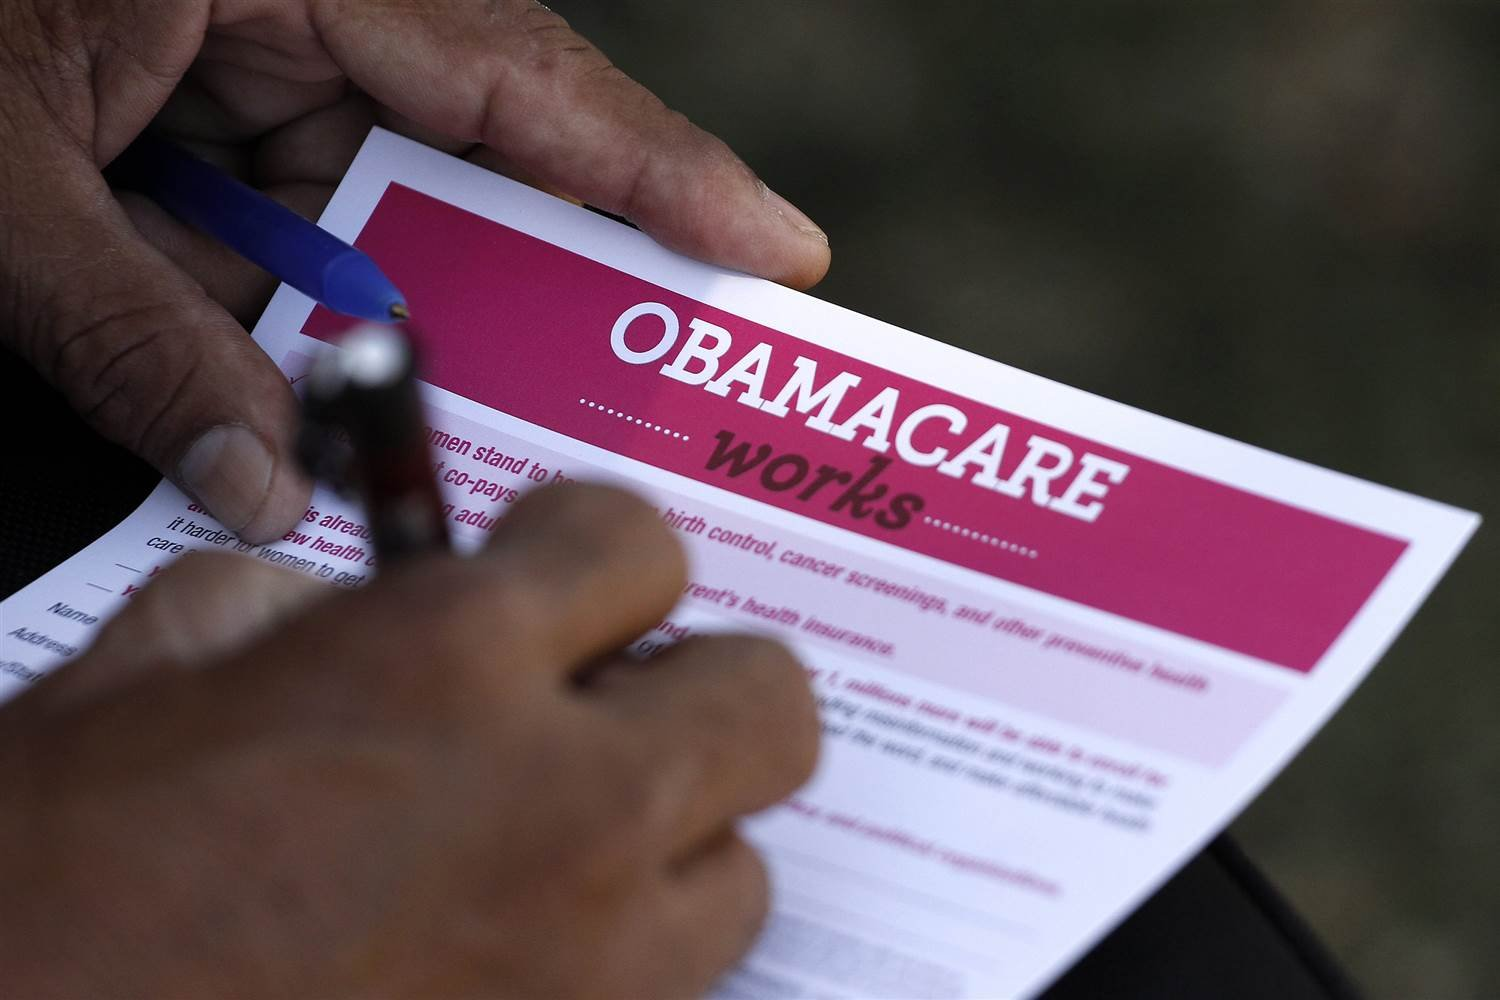 A man fills out an information card during an Affordable Care Act outreach event. JONATHAN ALCORN / Reuters file